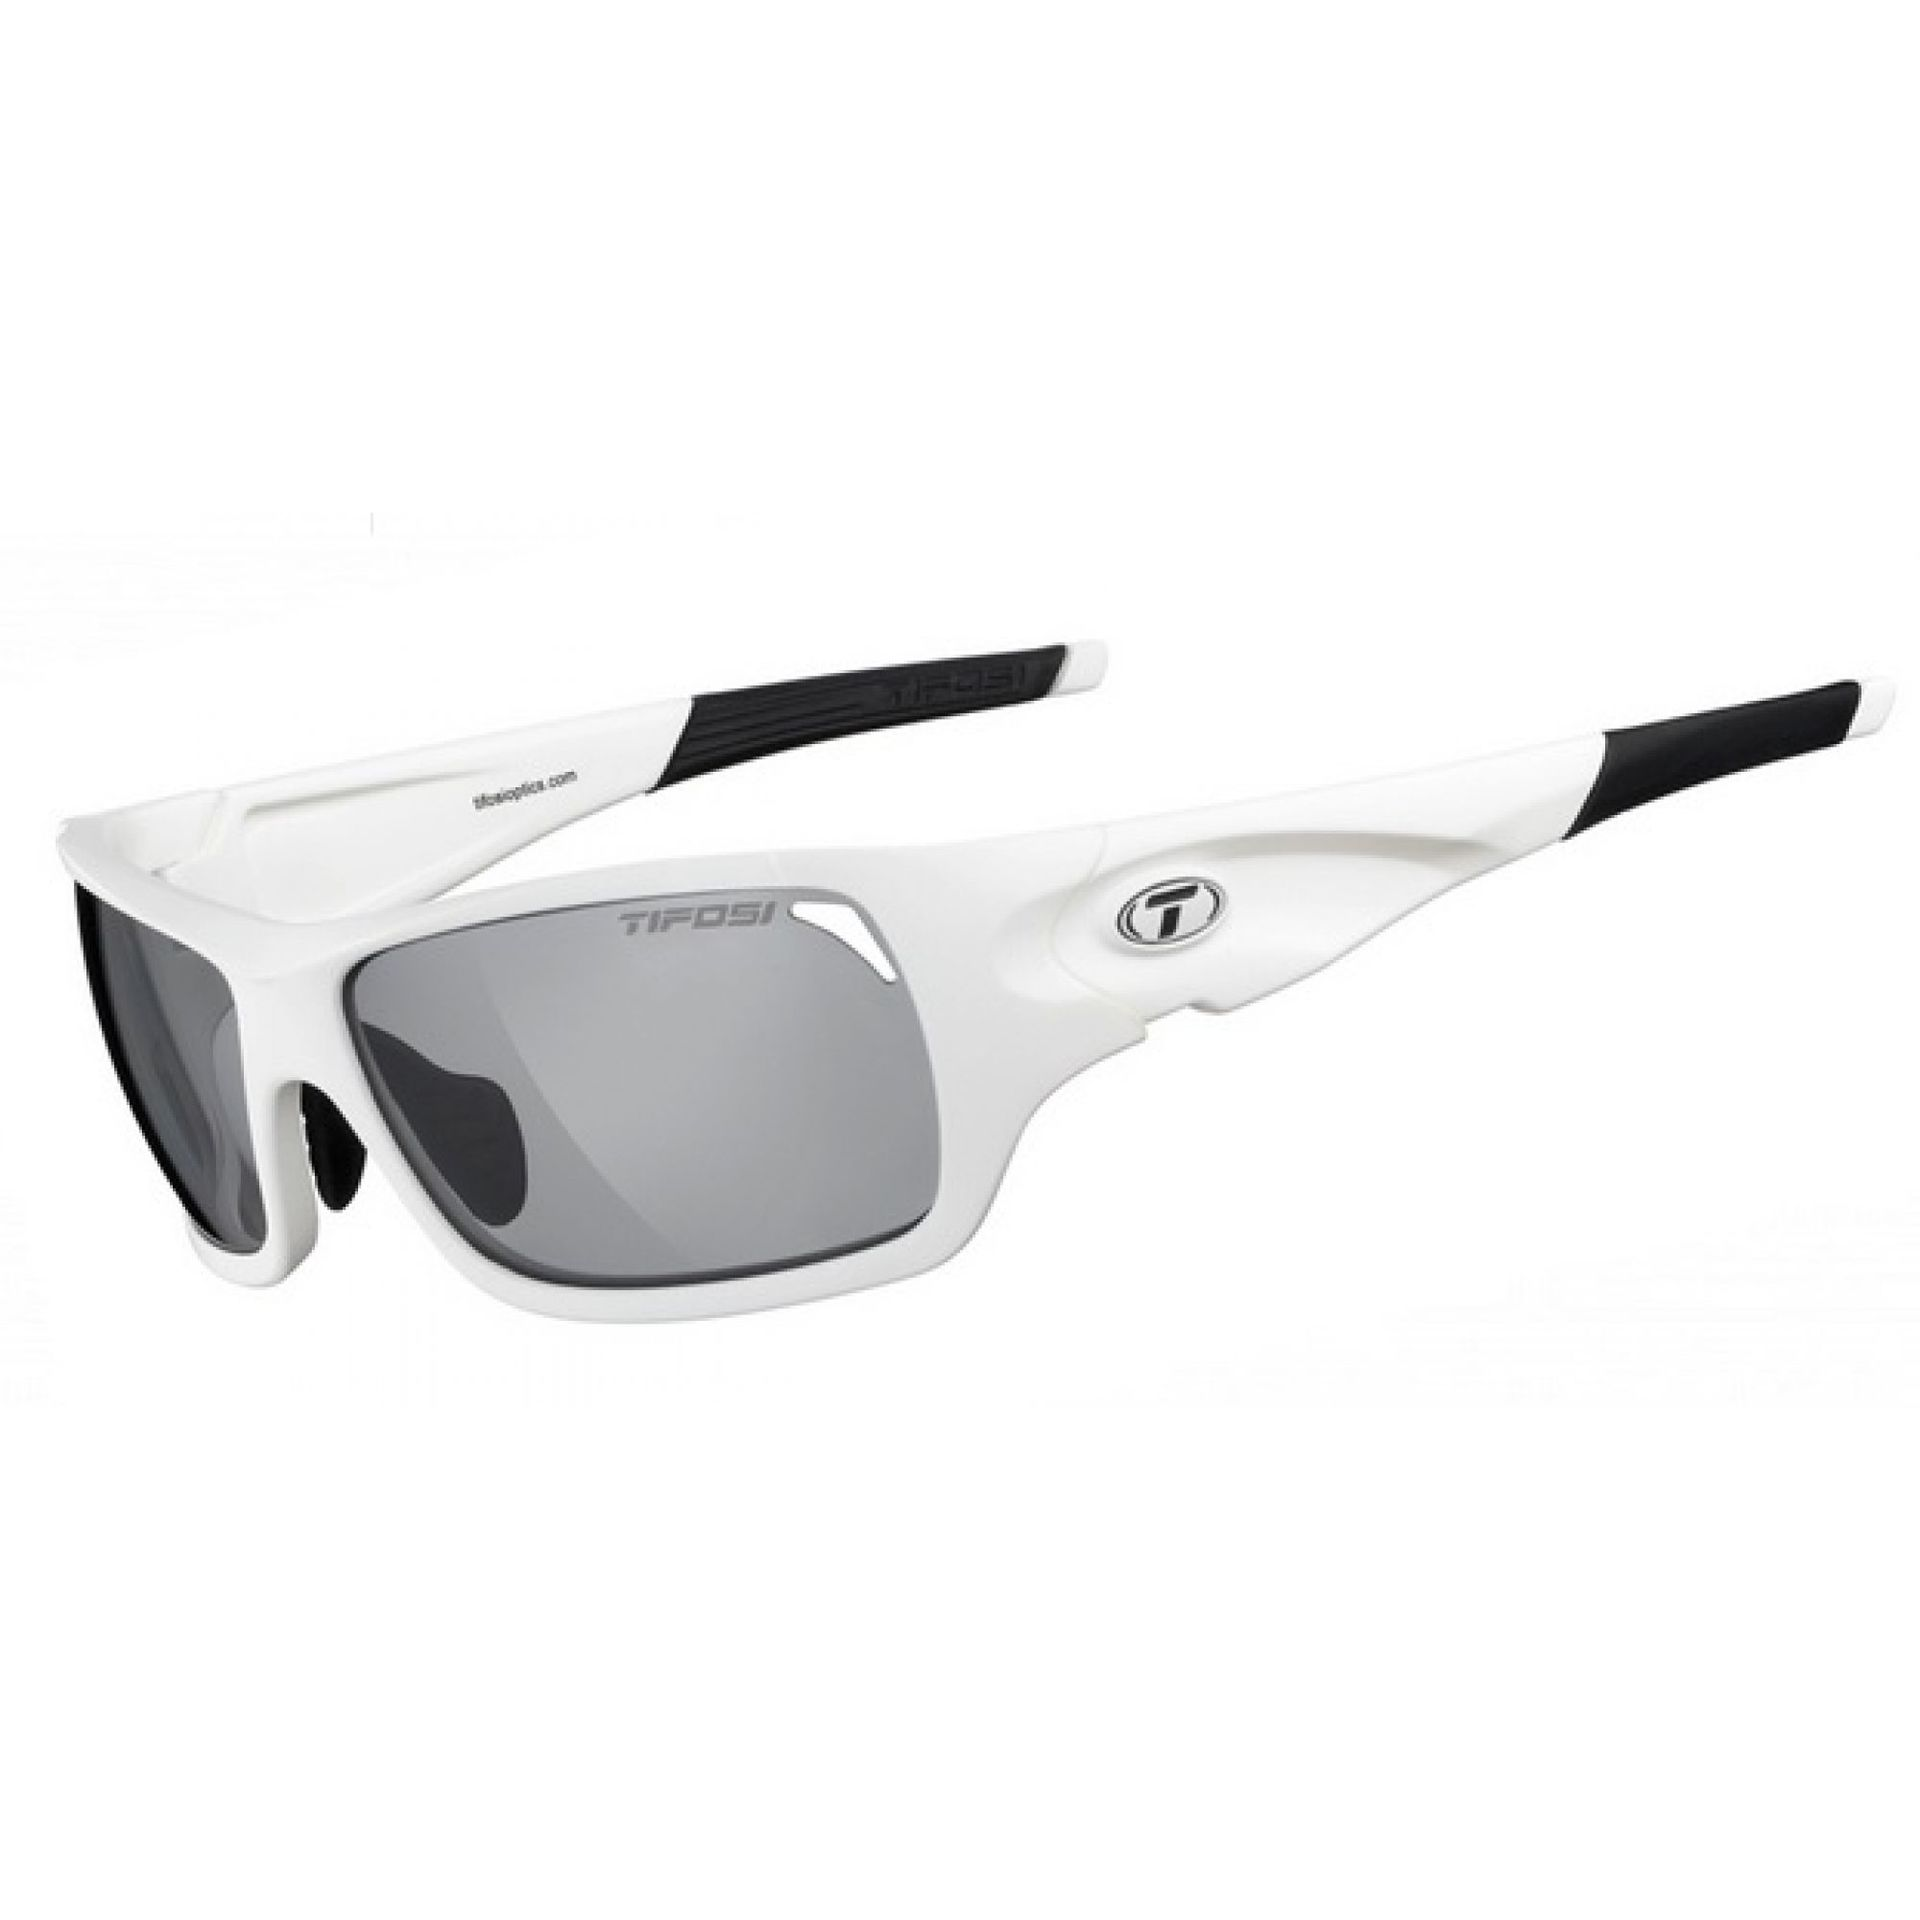 Okulary Tifosi Duo Fortec matte white